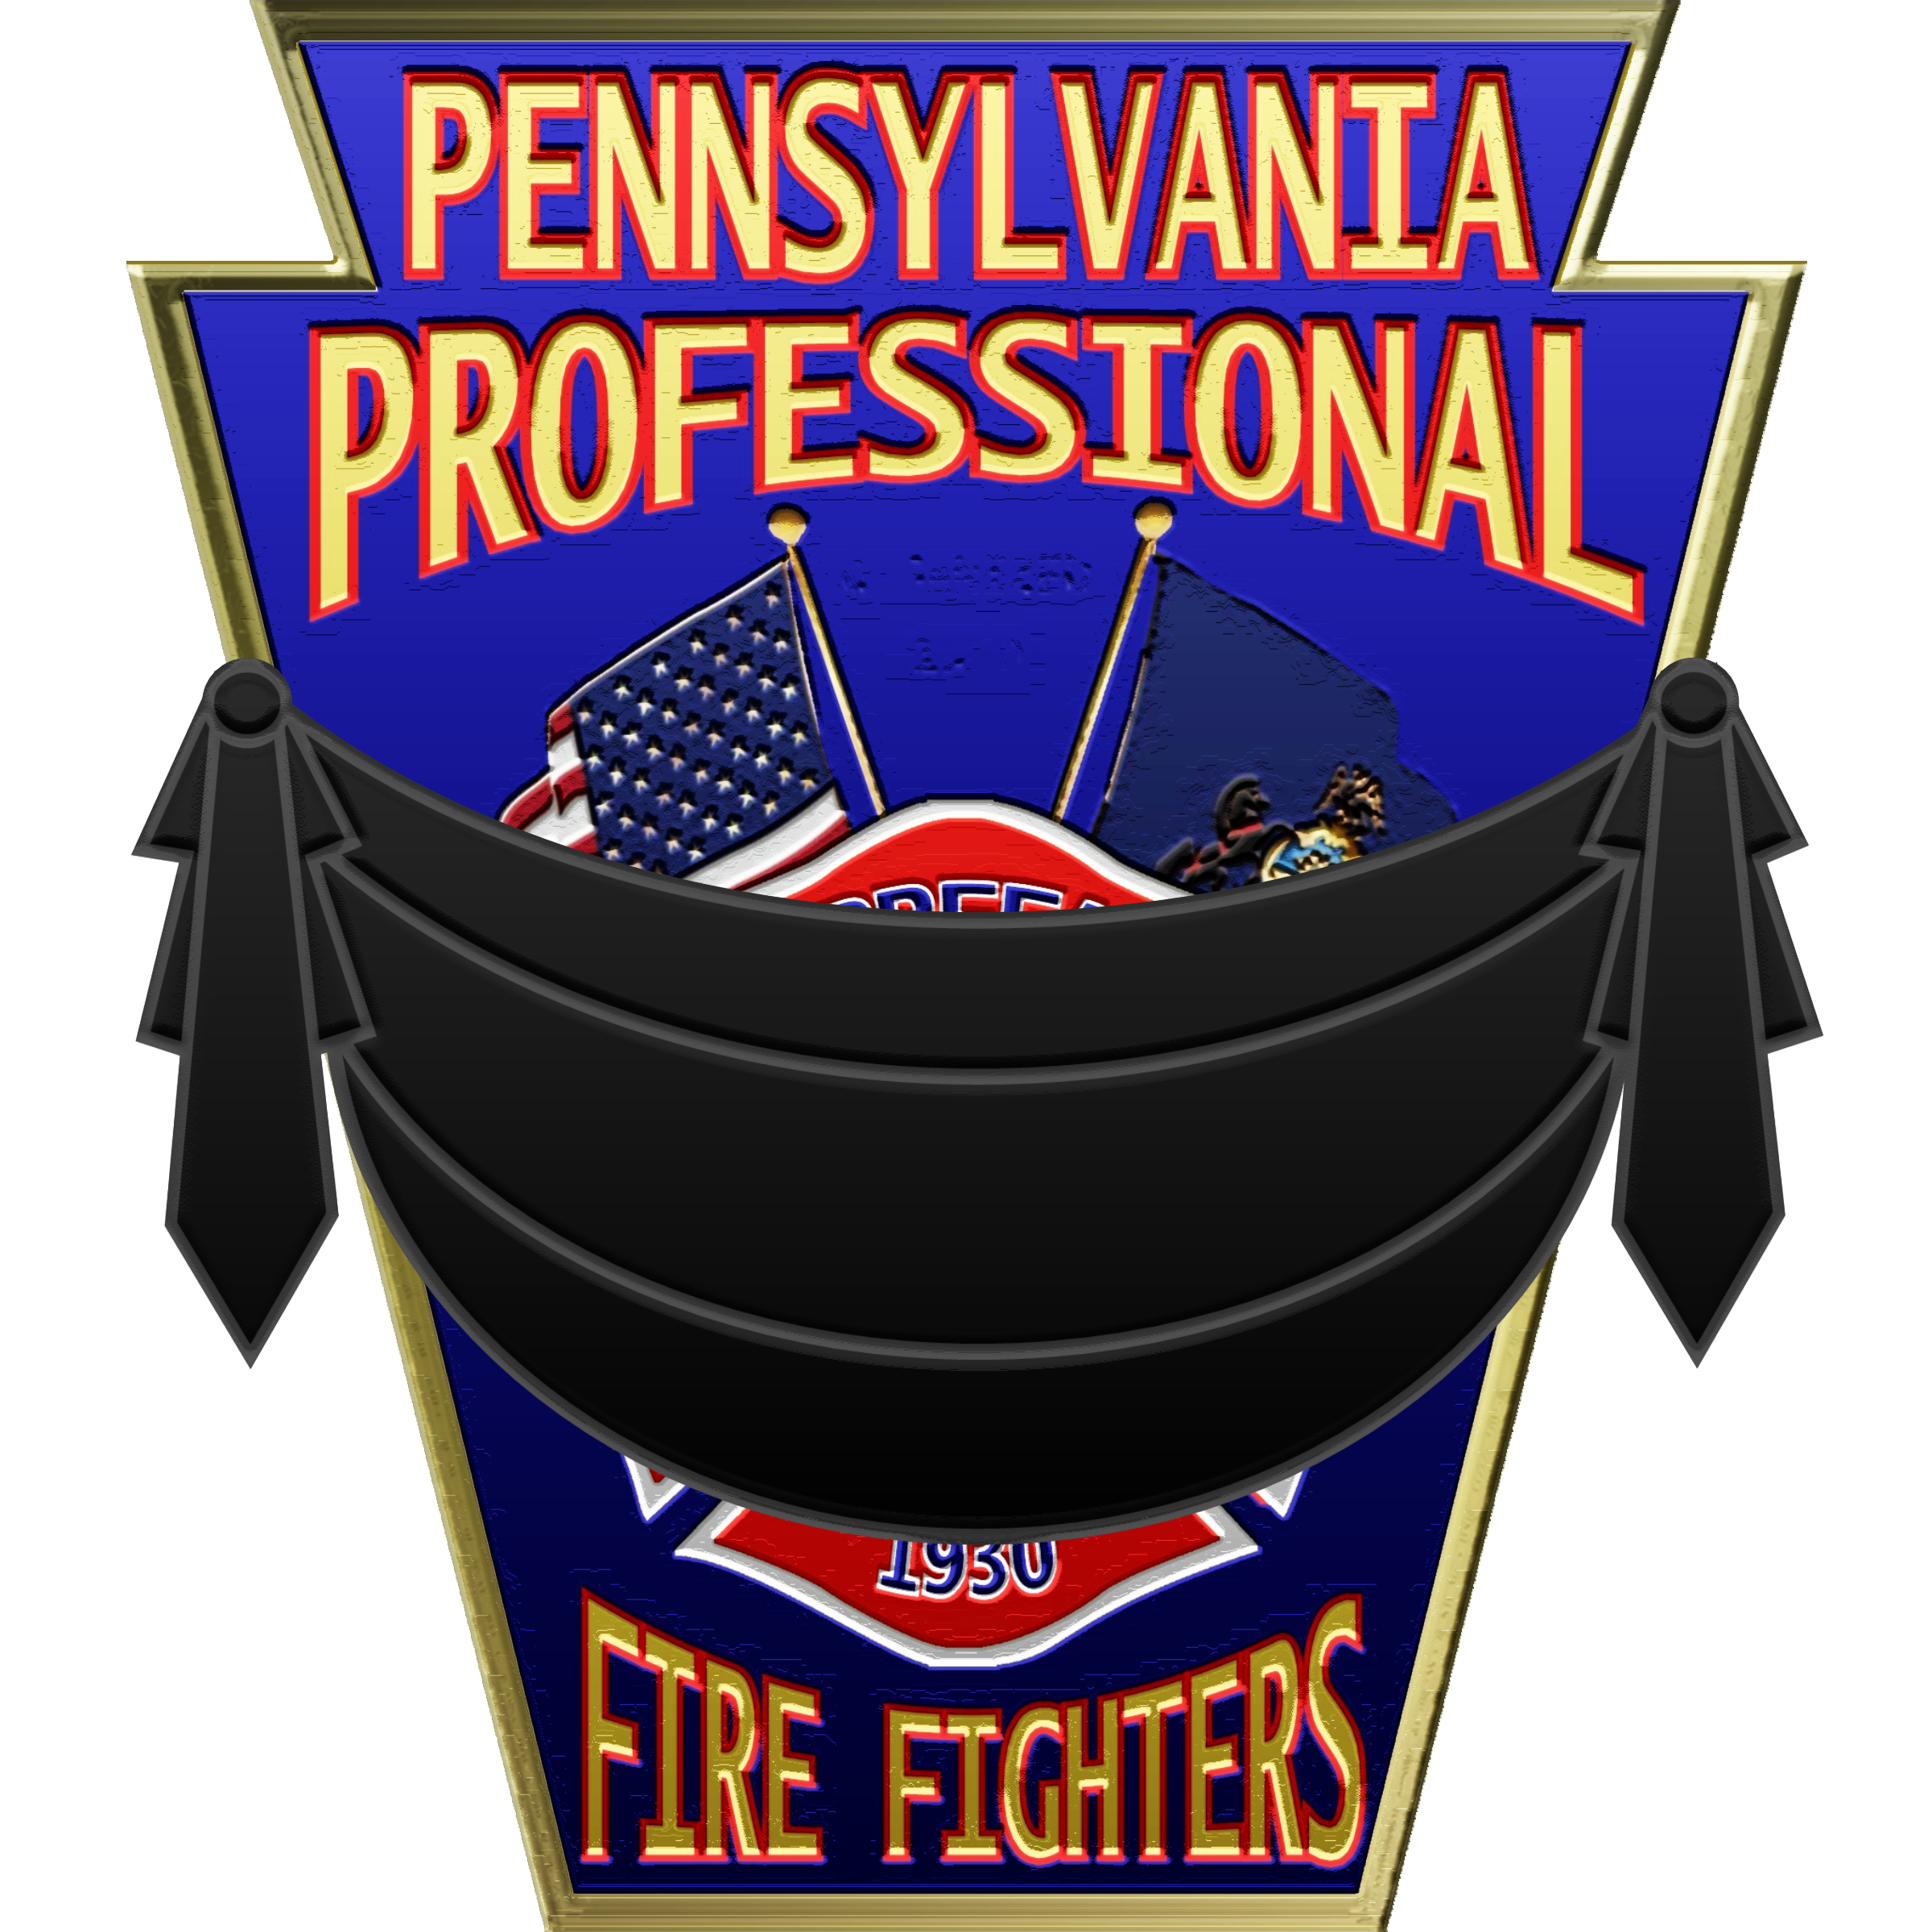 PPFFA Logo w/banner  PPFFA Logo with black mourning banner